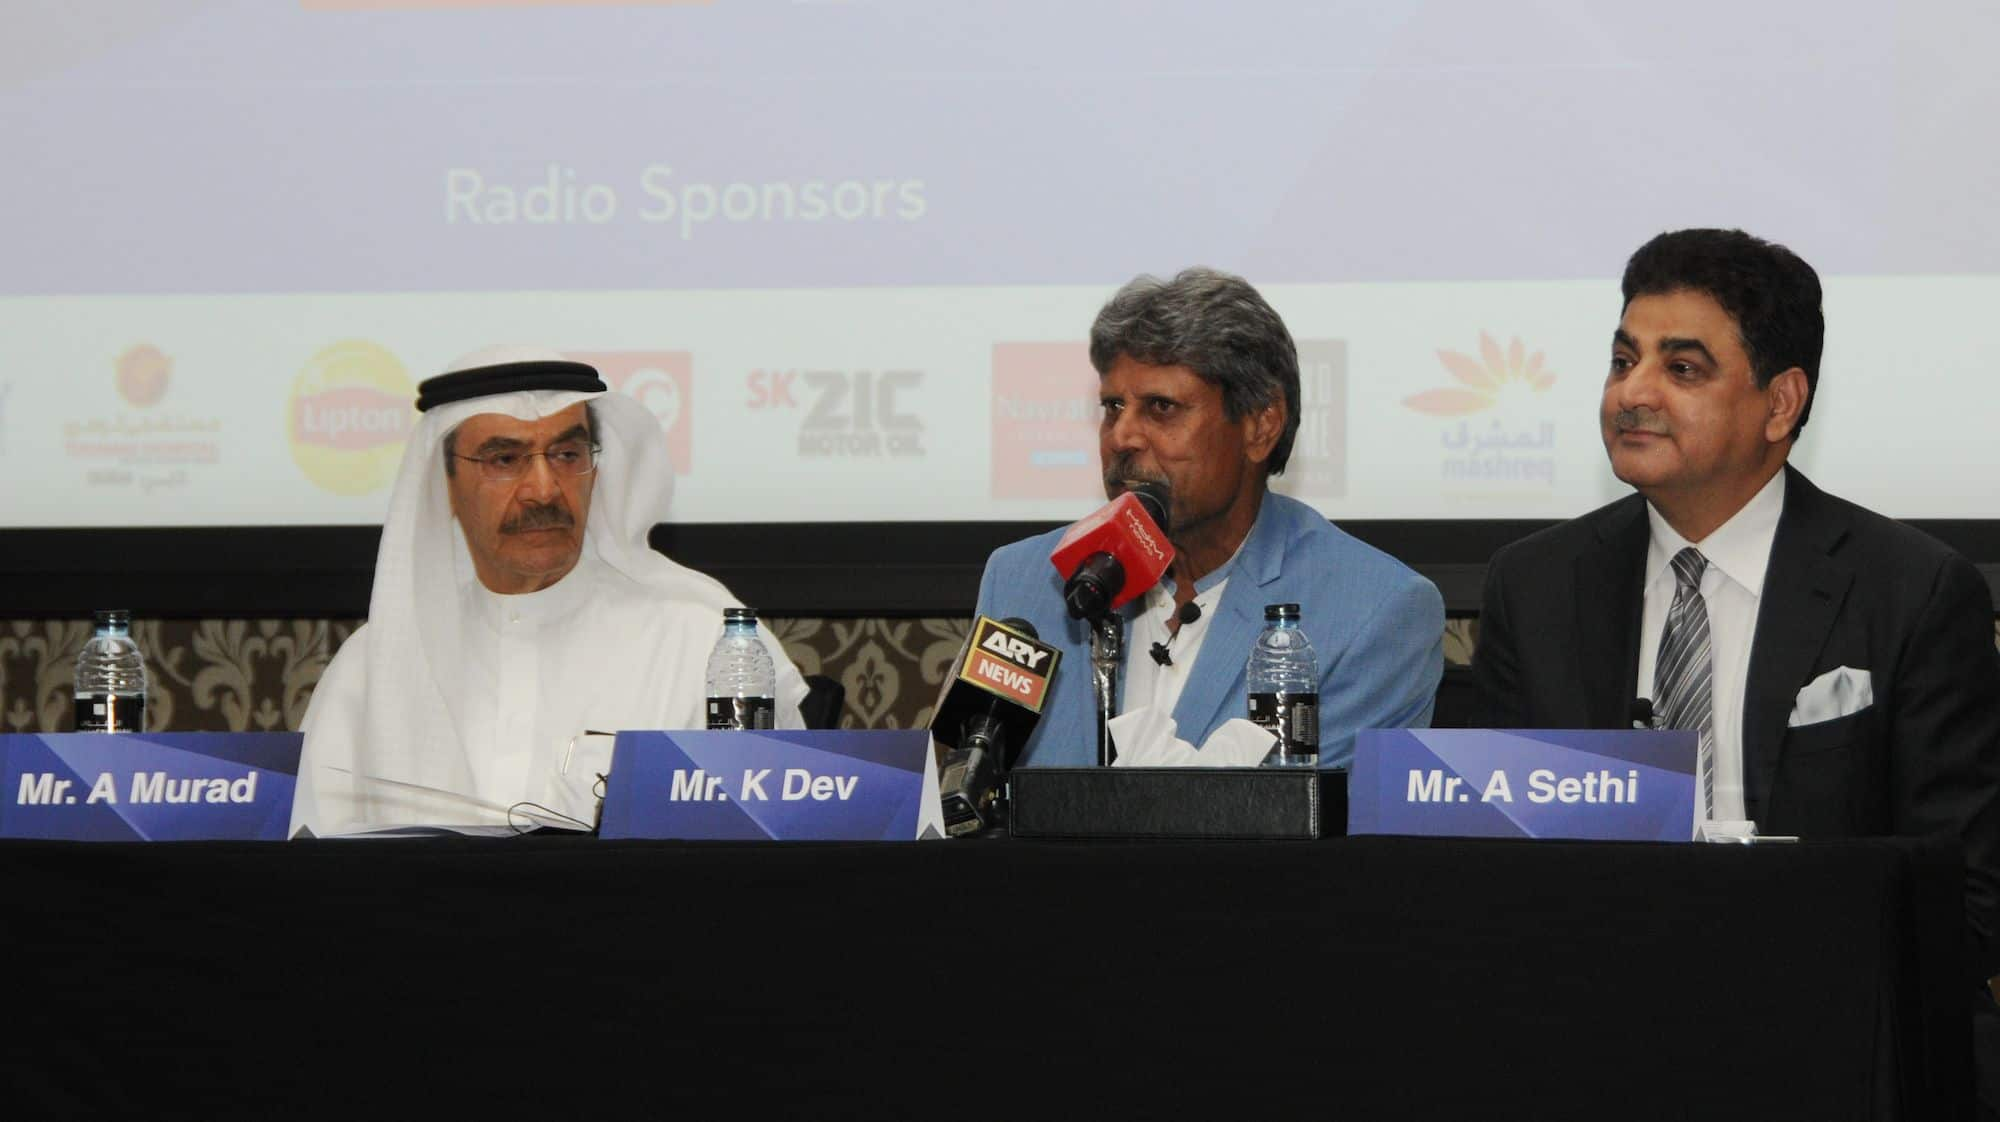 Asia Cup 2018: Channel 2 and Channel 4 Radio Network extend radio association